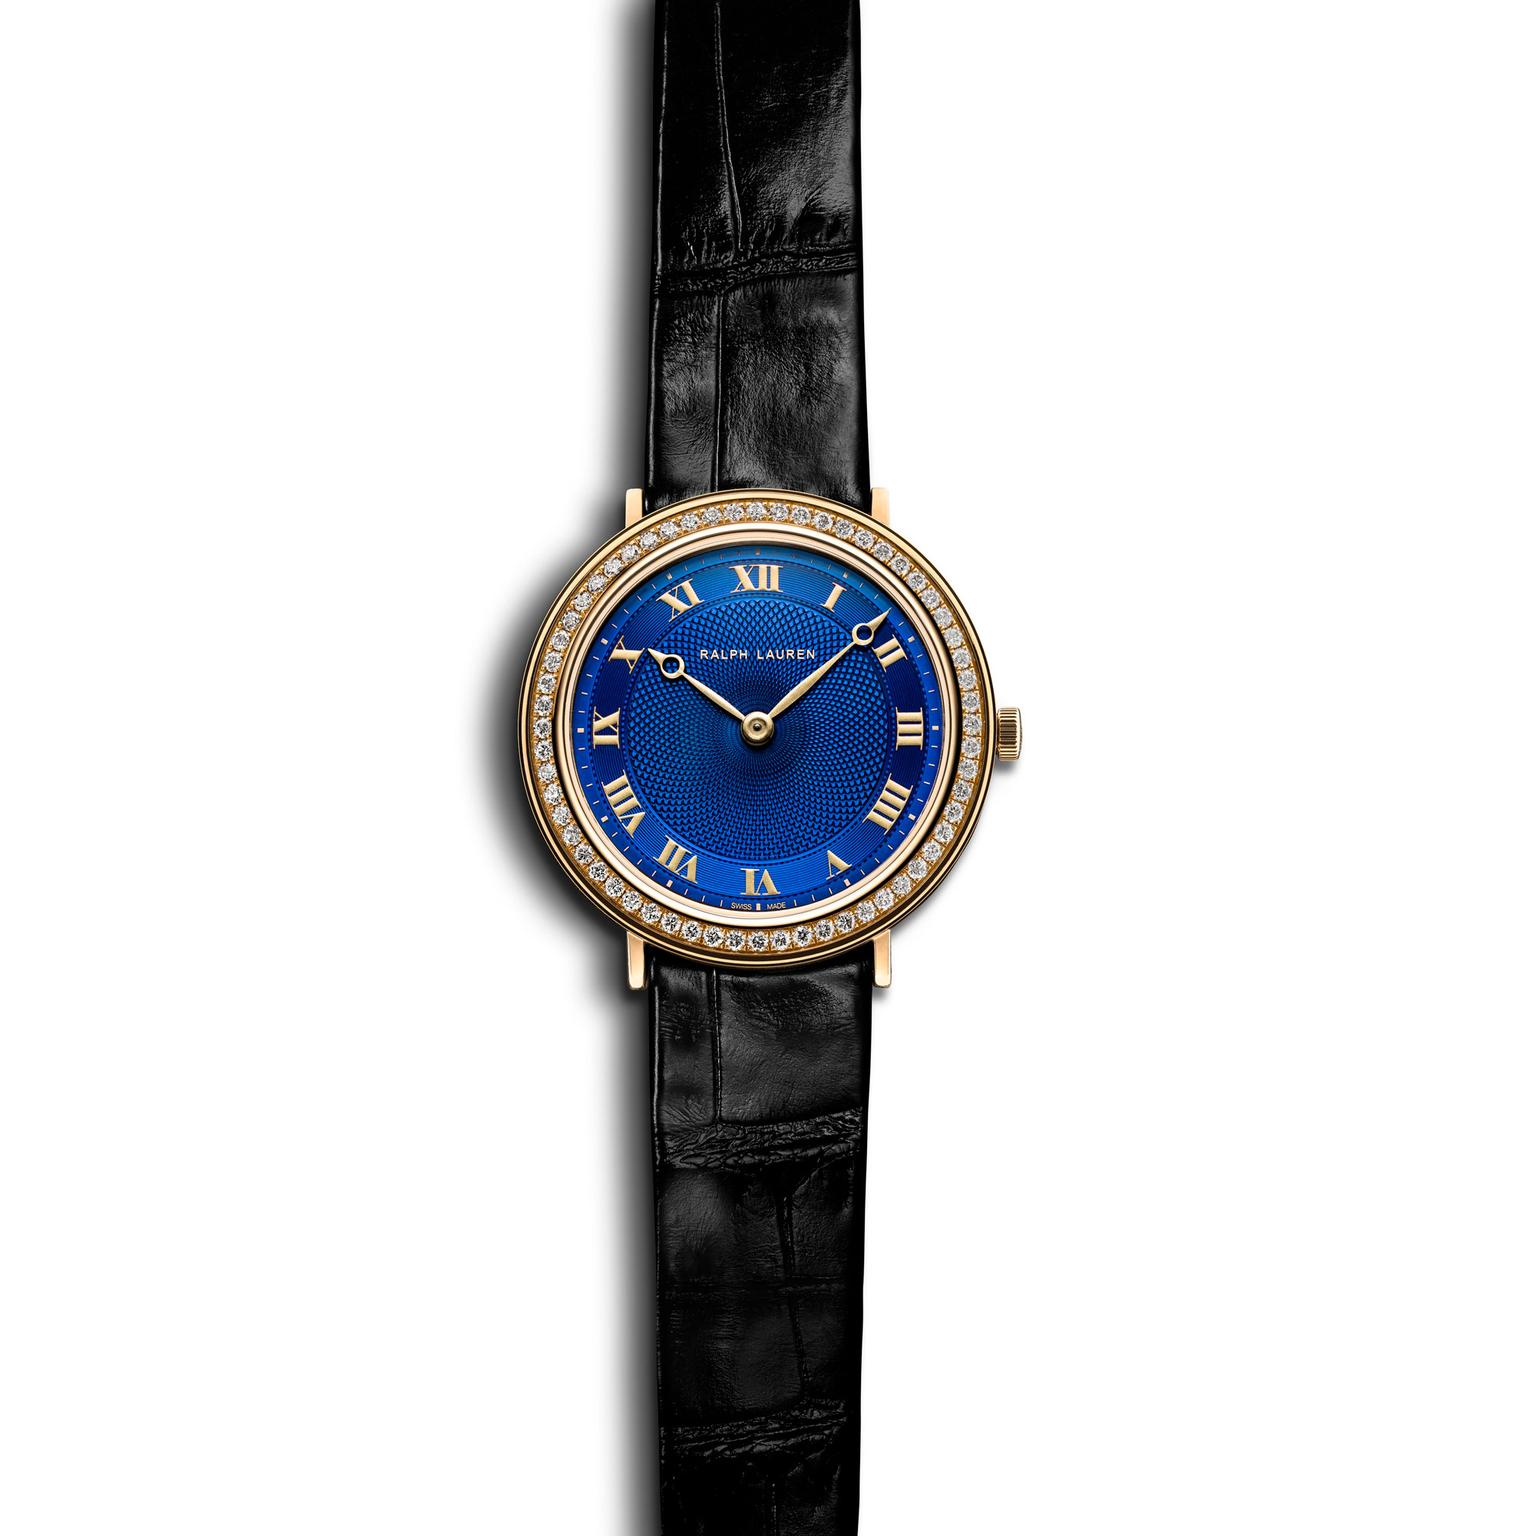 Ralph Lauren 32mm slim classique watch blue dial diamonds